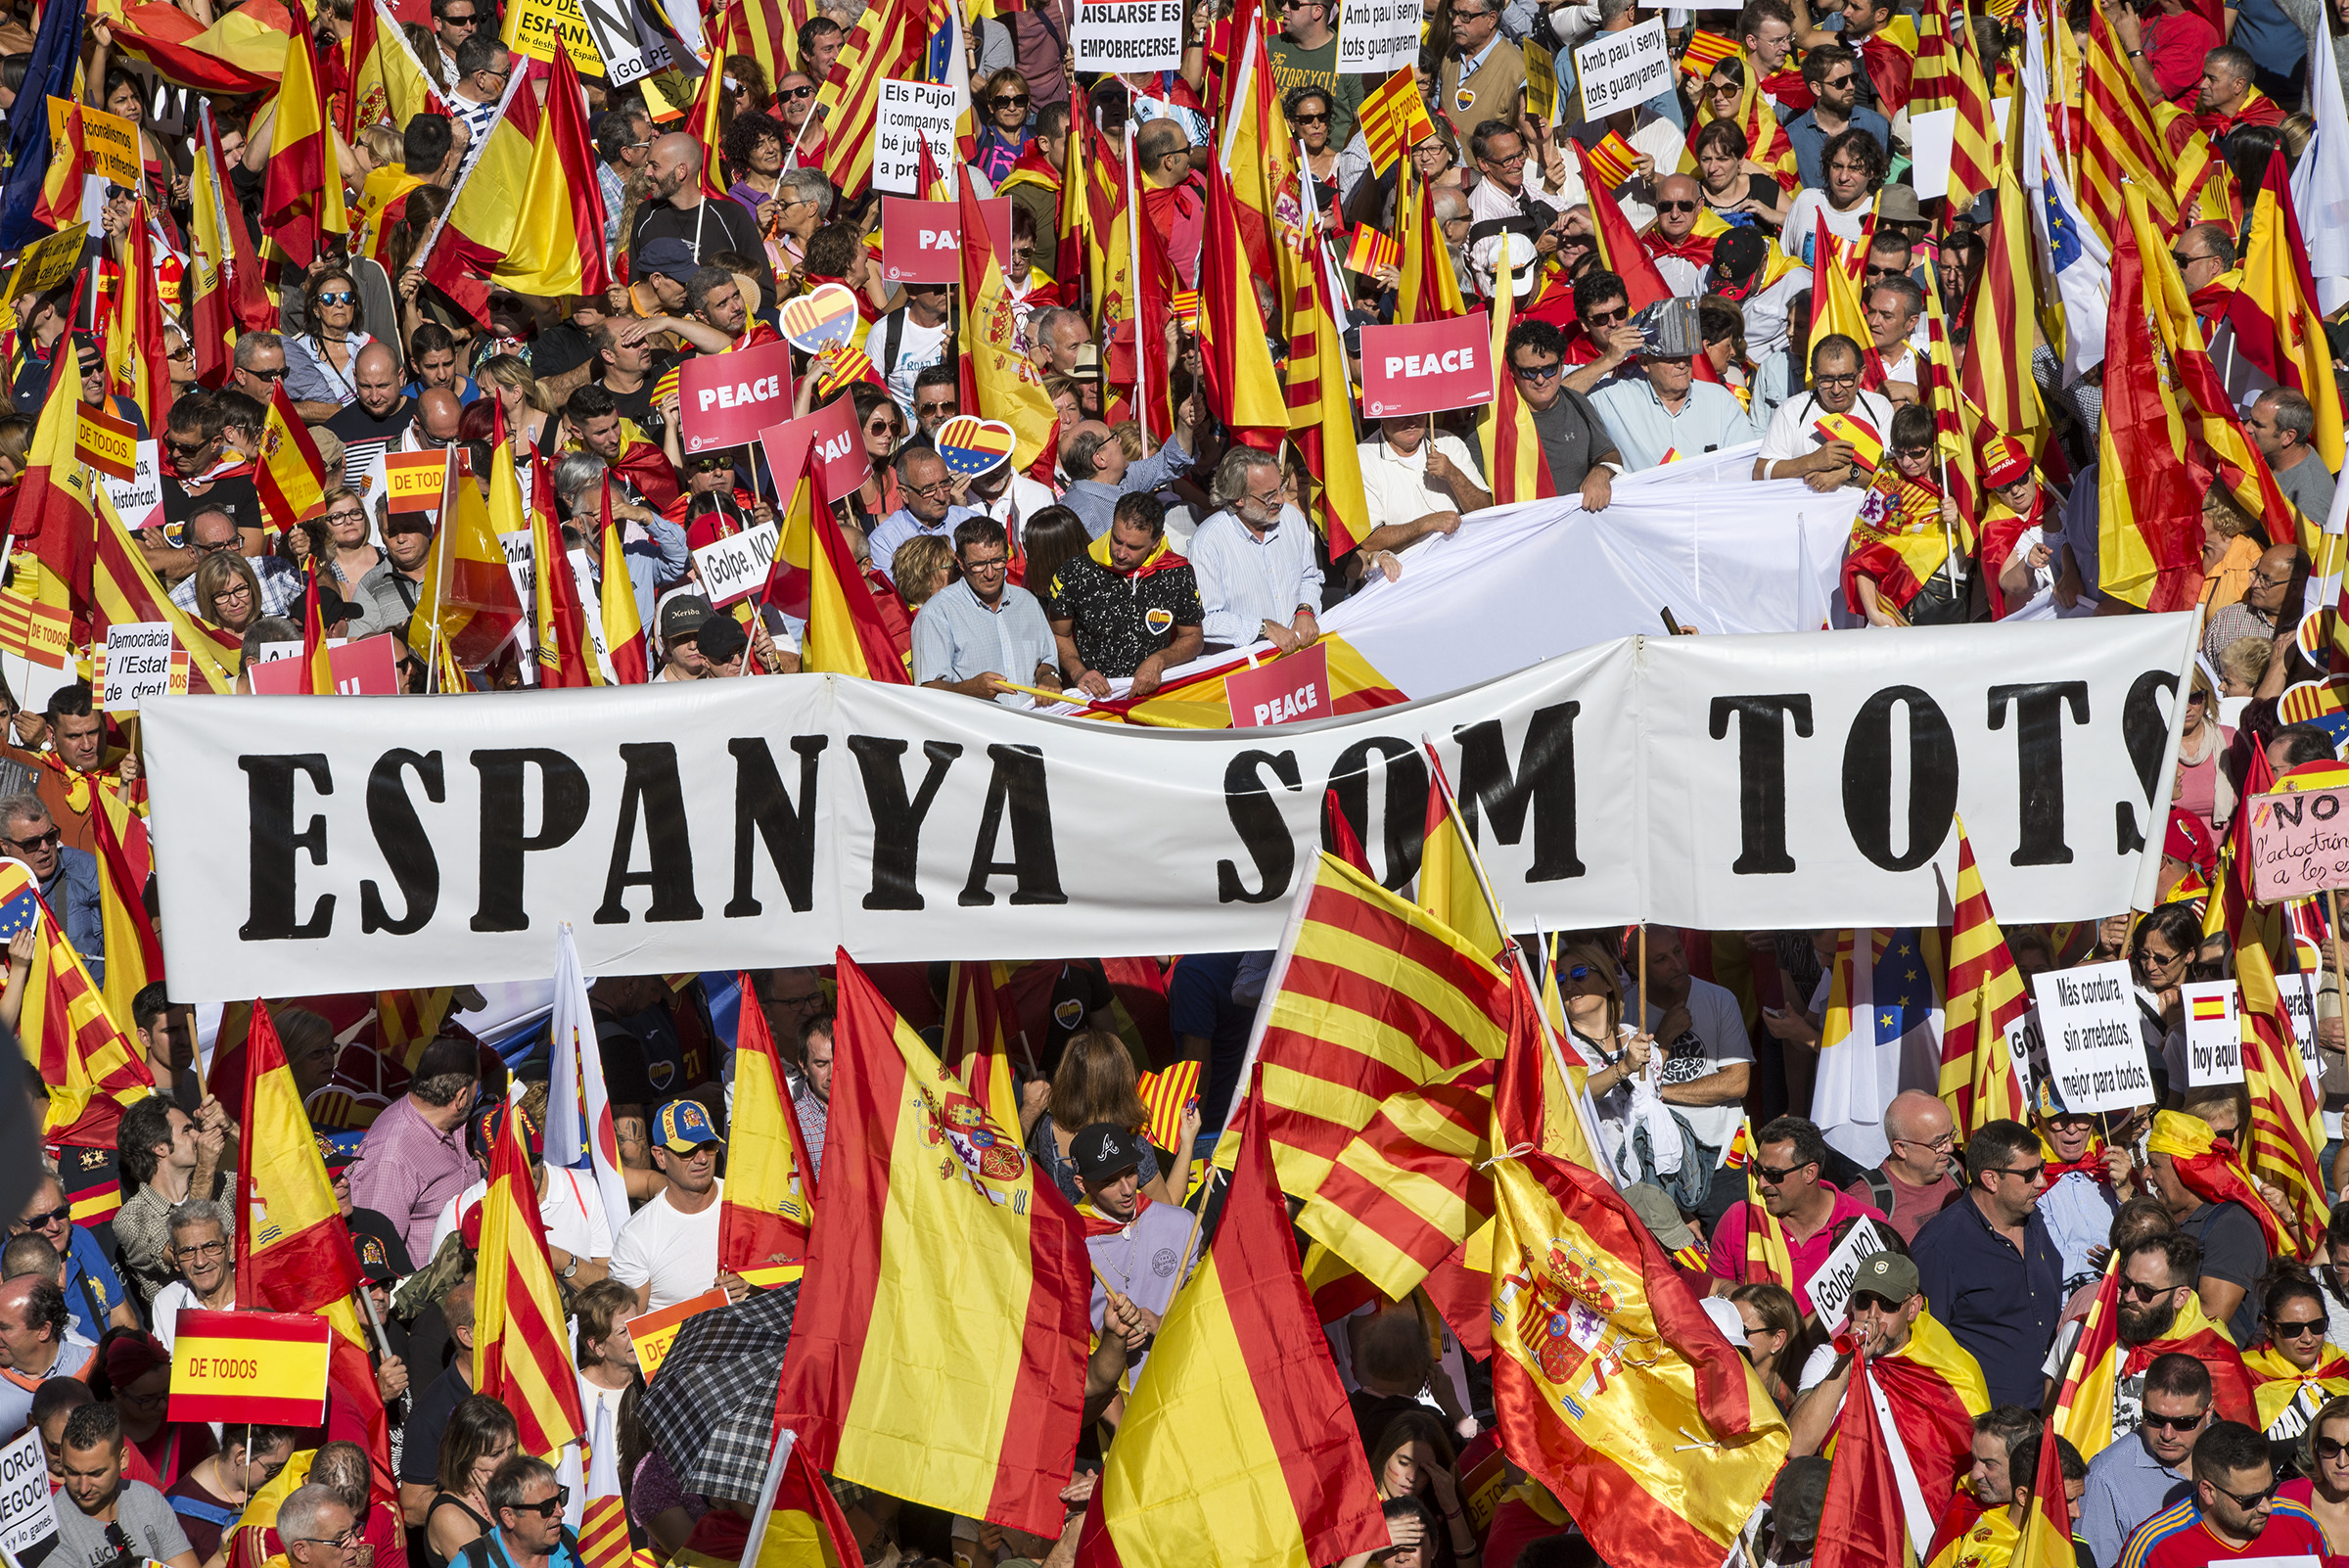 If Catalonia declares independence we will respond